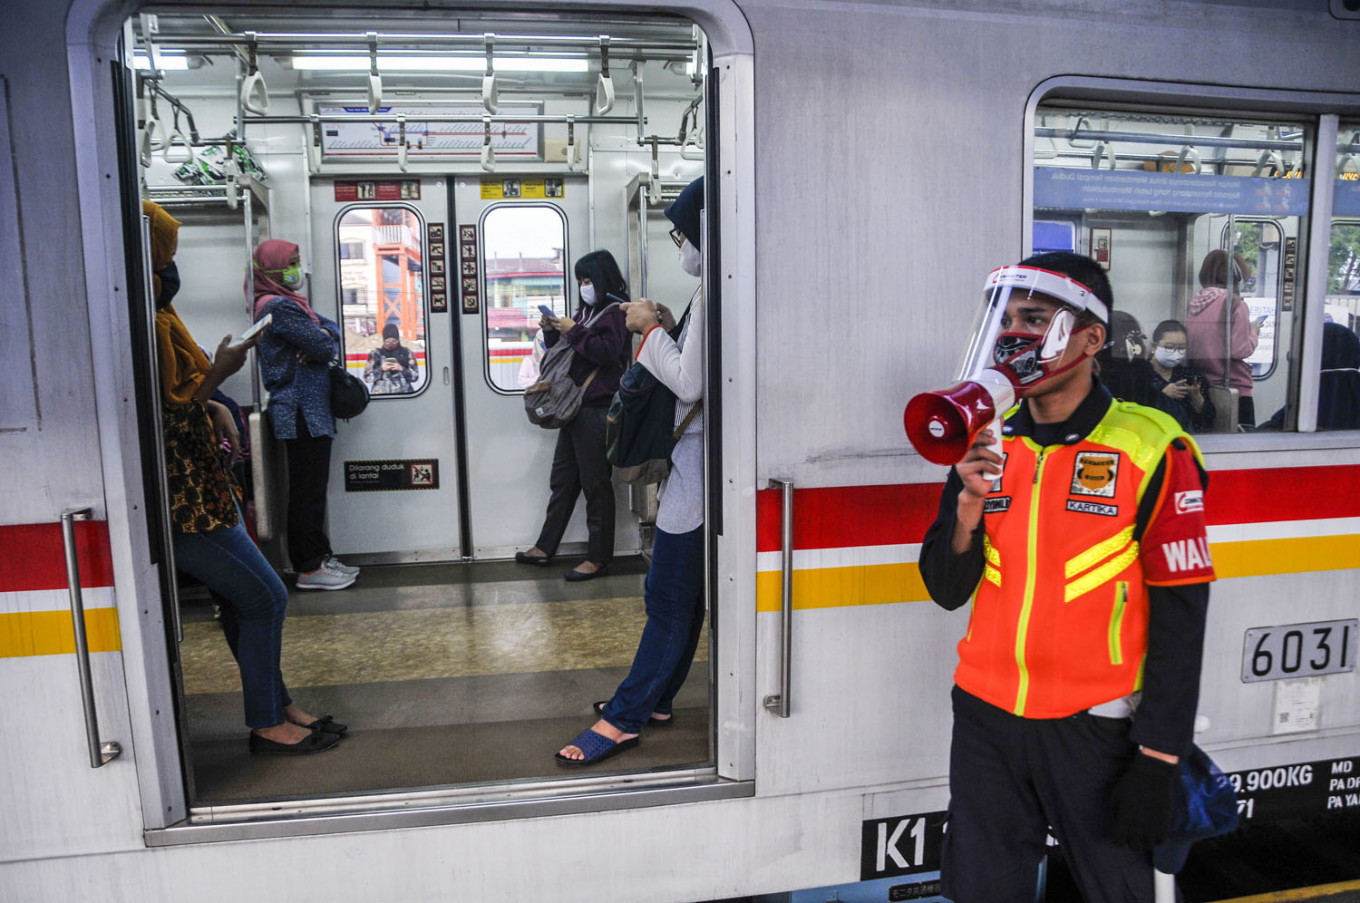 Commuters return to public transport with more protective gear